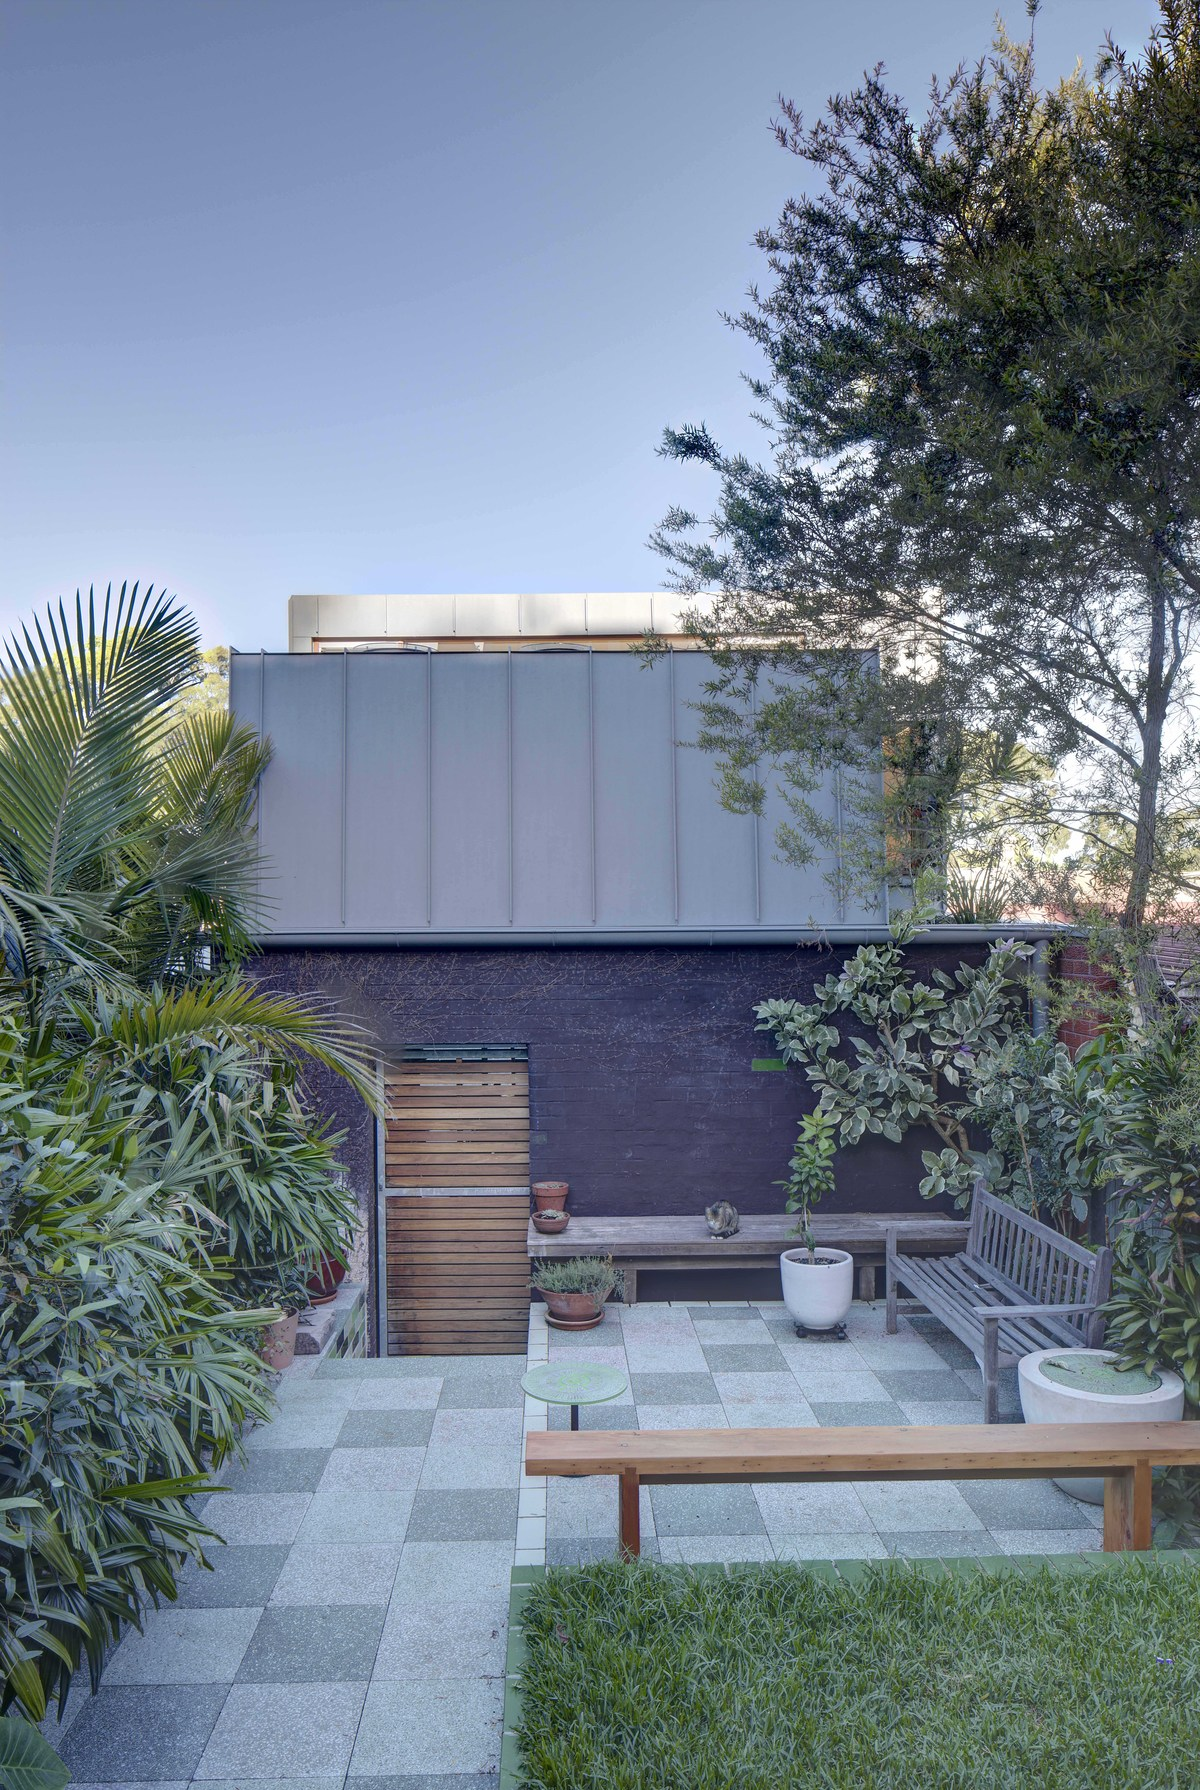 Courtyard view of the laneway house